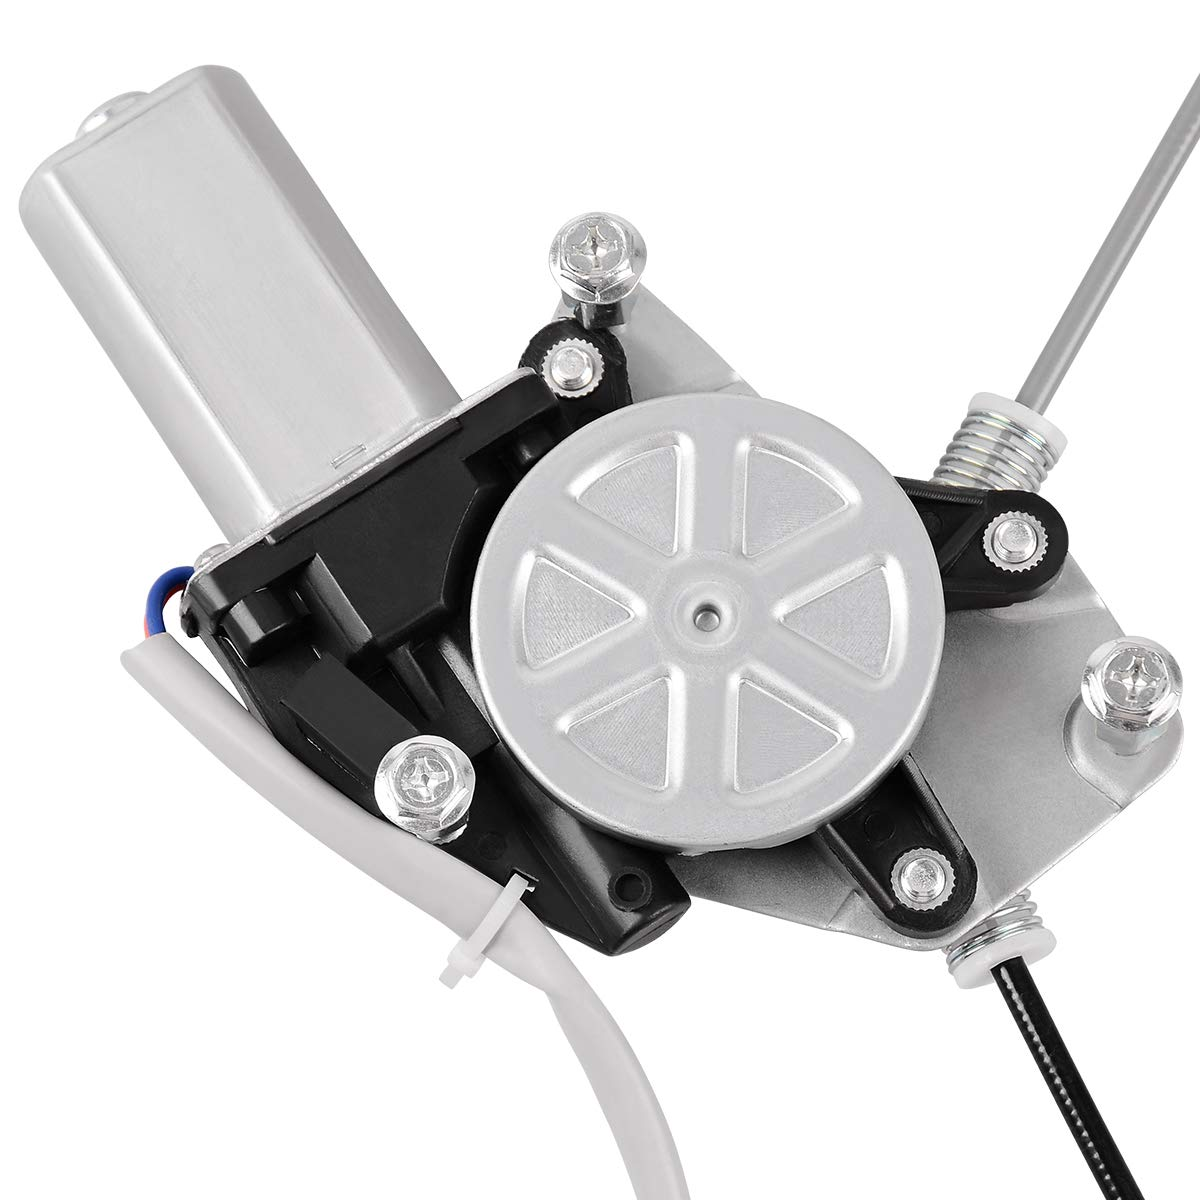 Power Window Regulator With Motor Assembly for 2003-2008 Honda Pilot Front Right RH Passenger Side 2 Pin Connector.